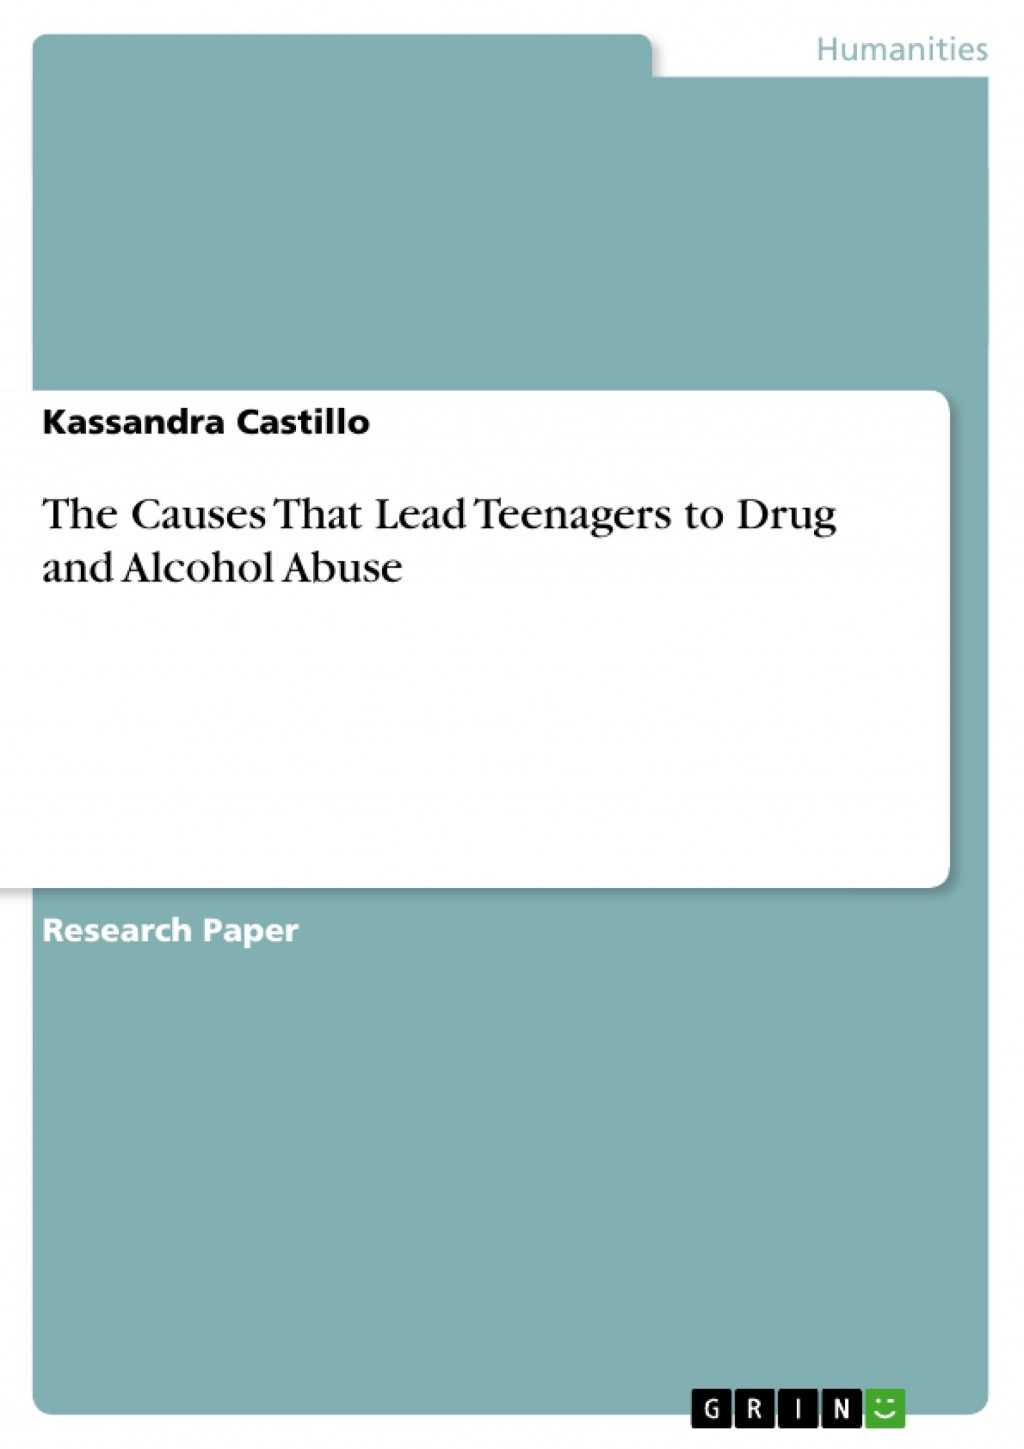 025 125033 0 Essay Example Alcoholism Cause And Fearsome Effect Large